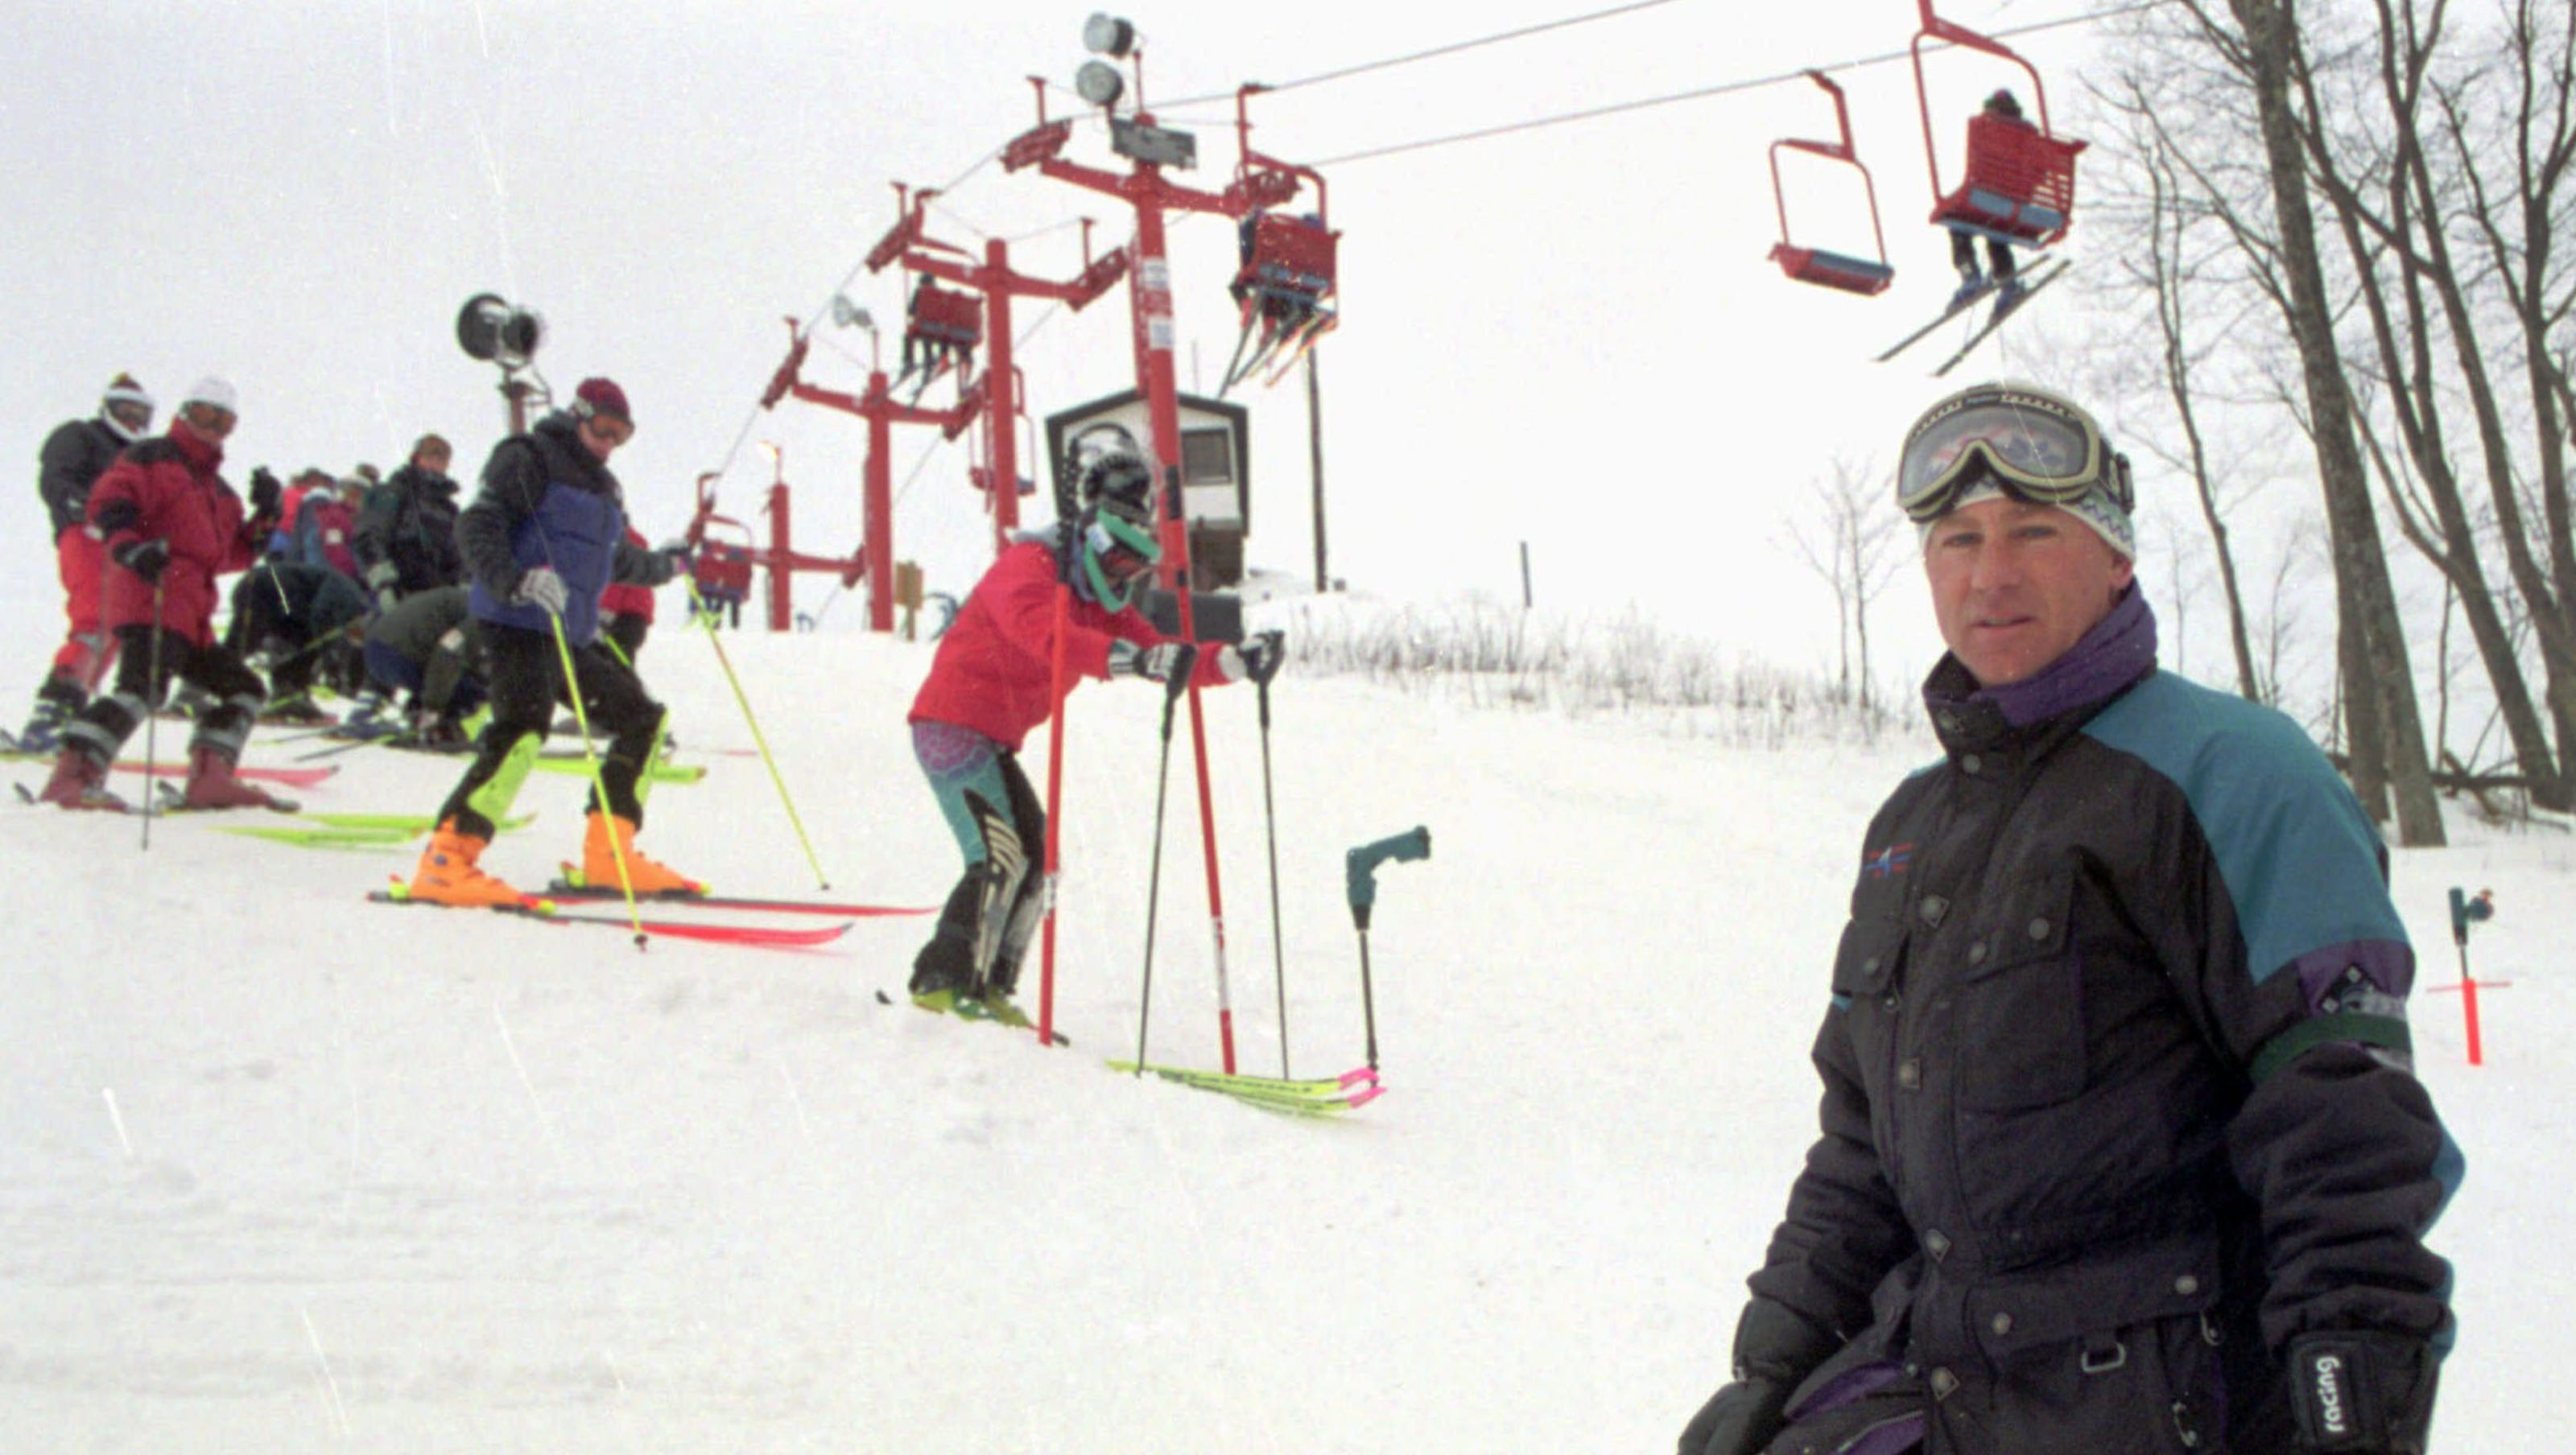 top 10 ski resorts, areas in michigan this winter